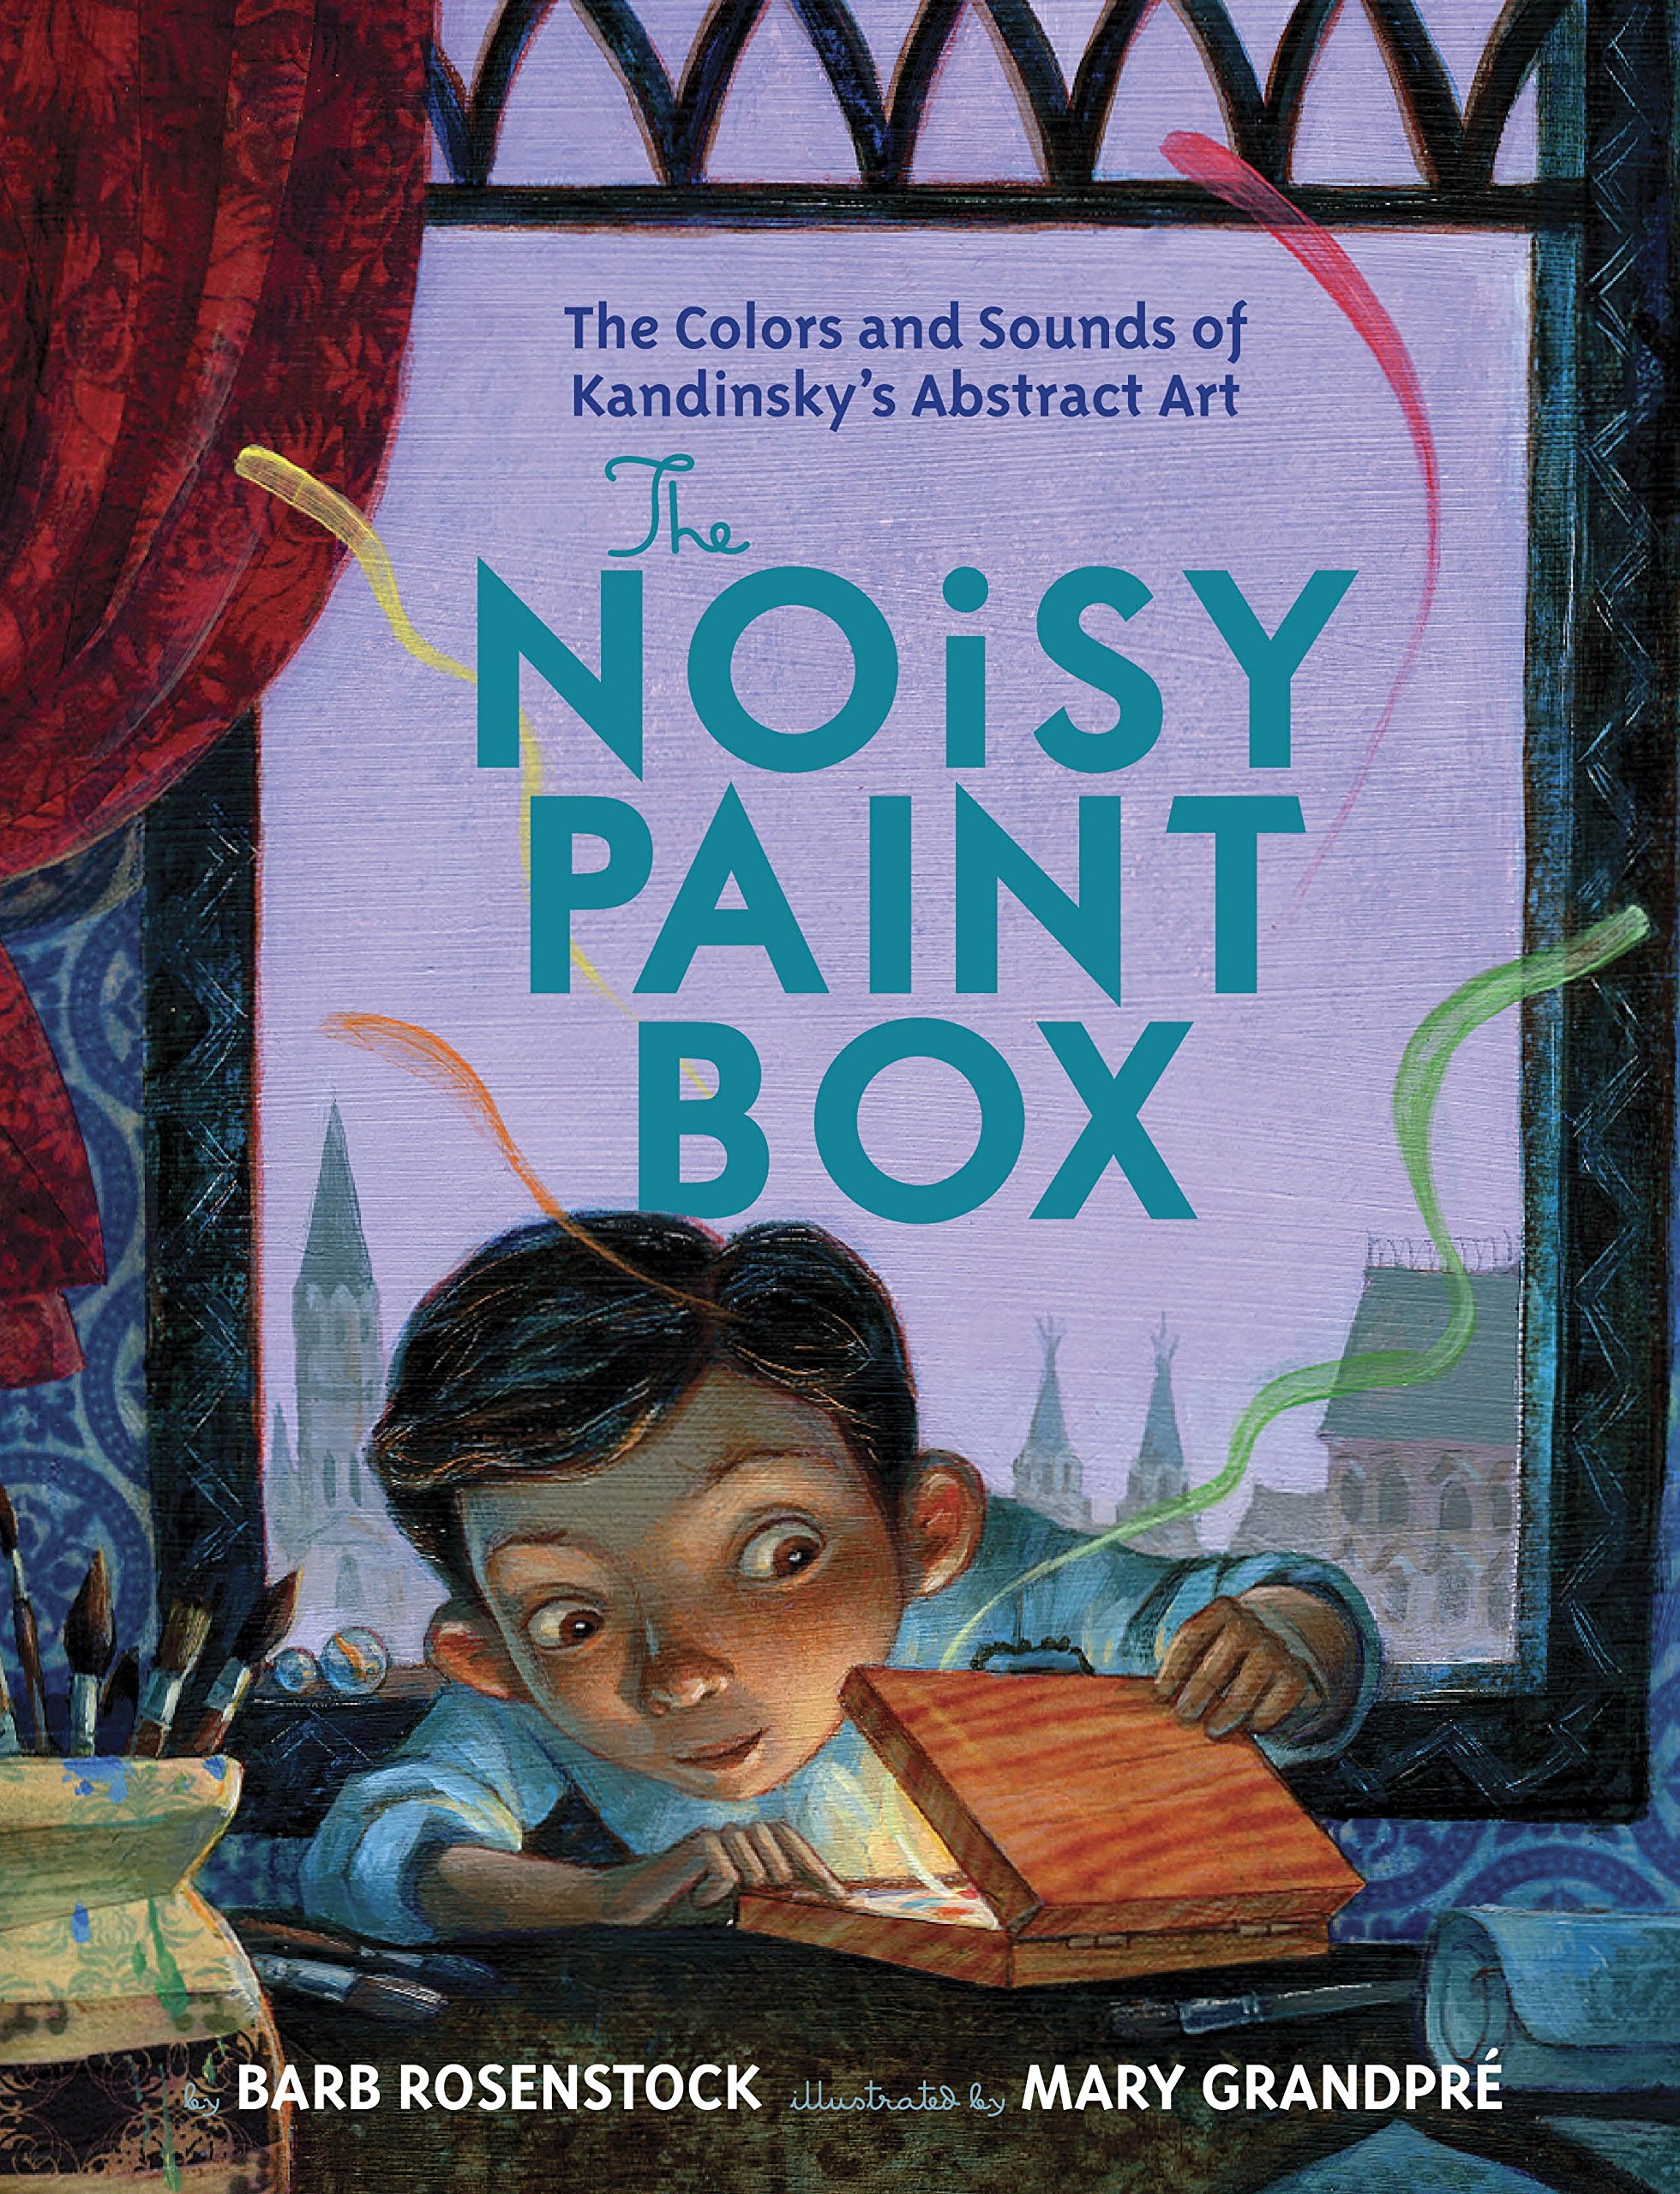 The Noisy Paint Box: The Colors and Sounds of Kandinsky's Abstract Art:  Rosenstock, Barb, GrandPre, Mary: 4708364242710: Amazon.com: Books